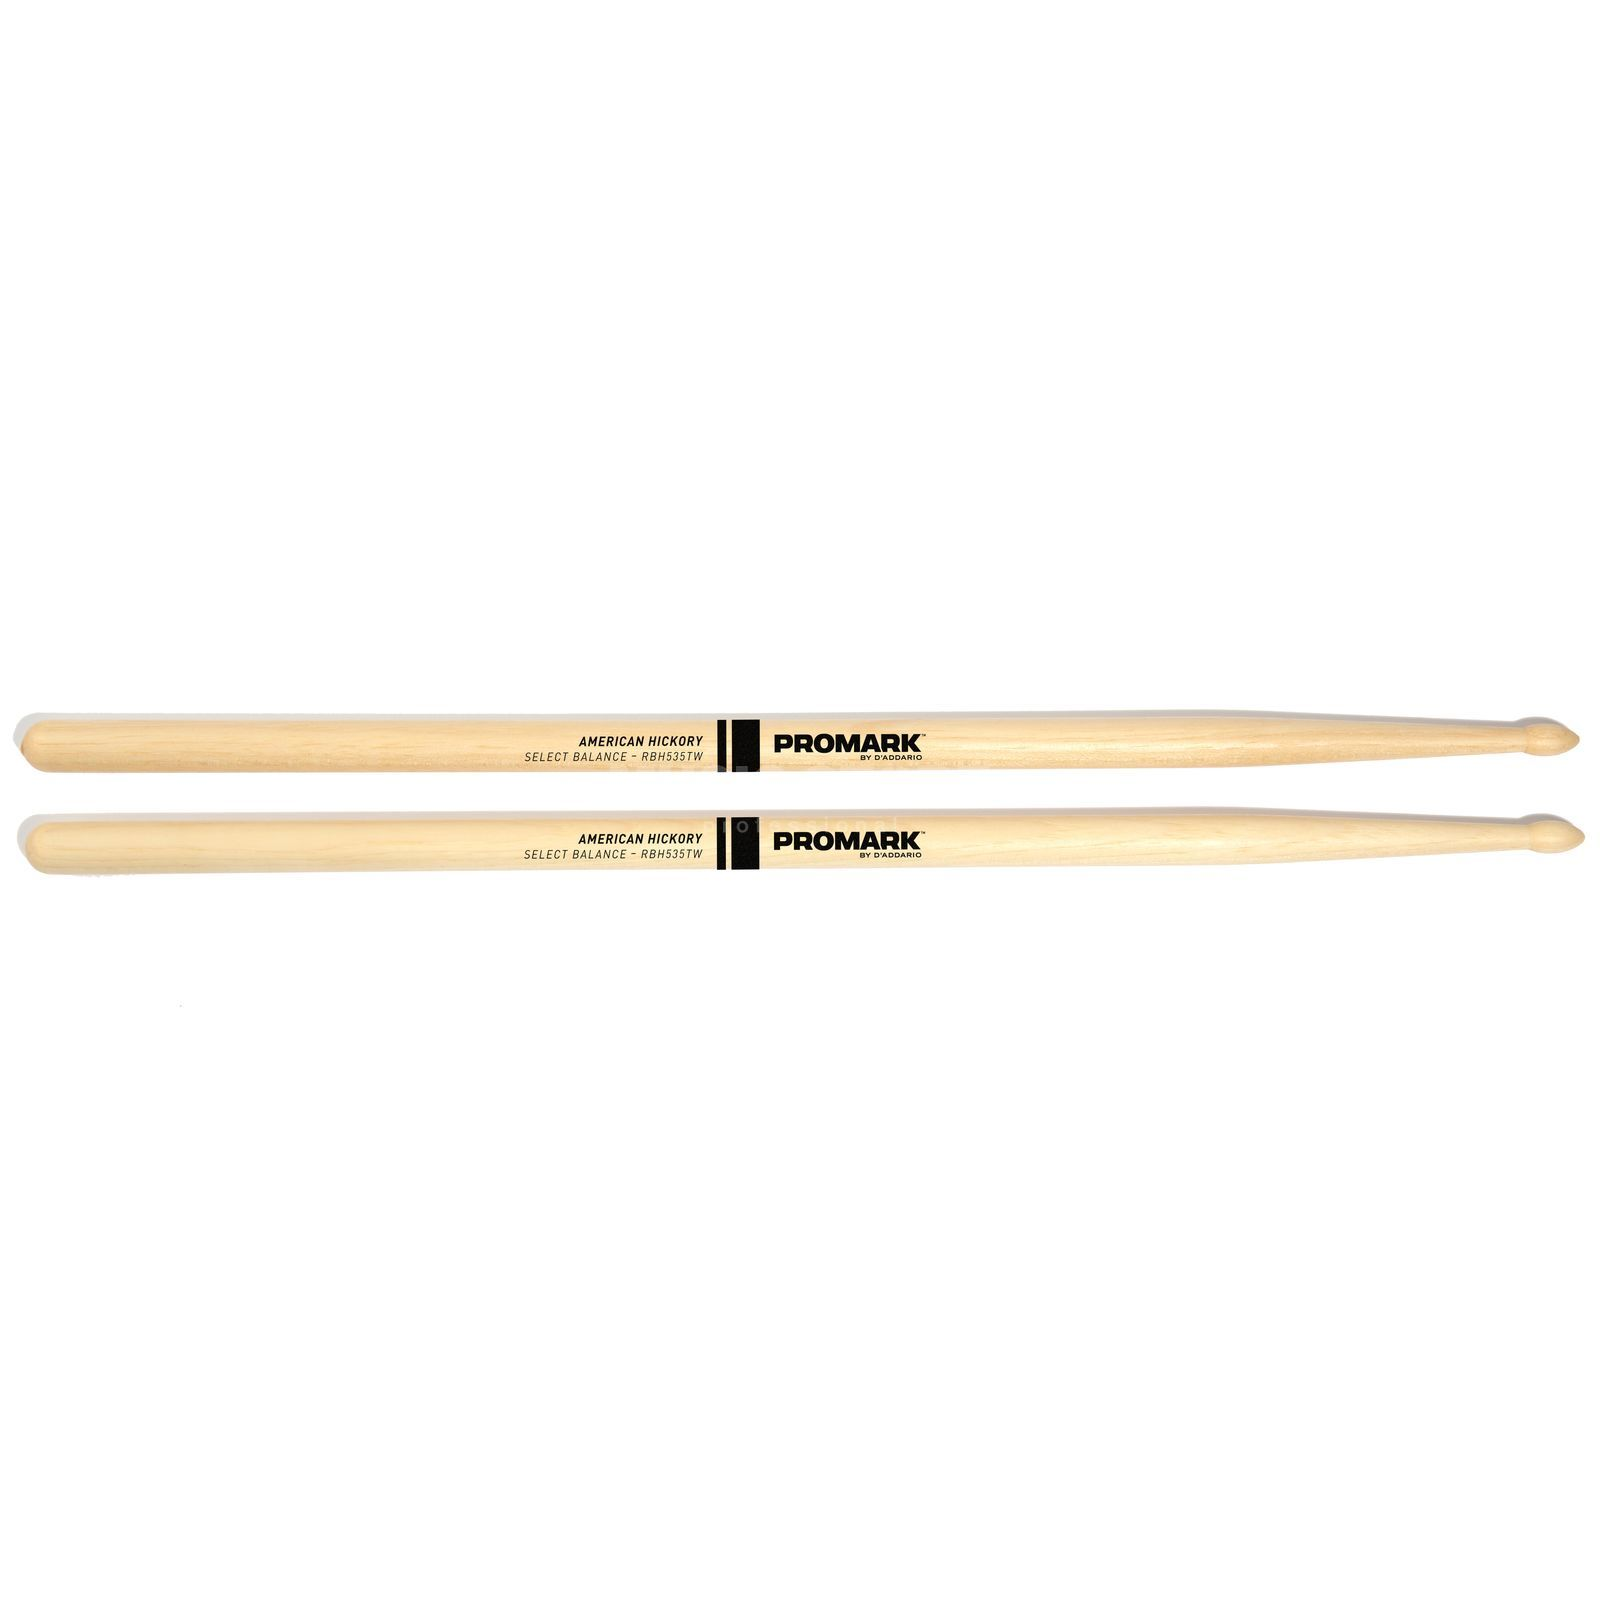 PRO-MARK Select Balance Sticks RBH535TW Rebound Balance, Wood Tip Produktbillede